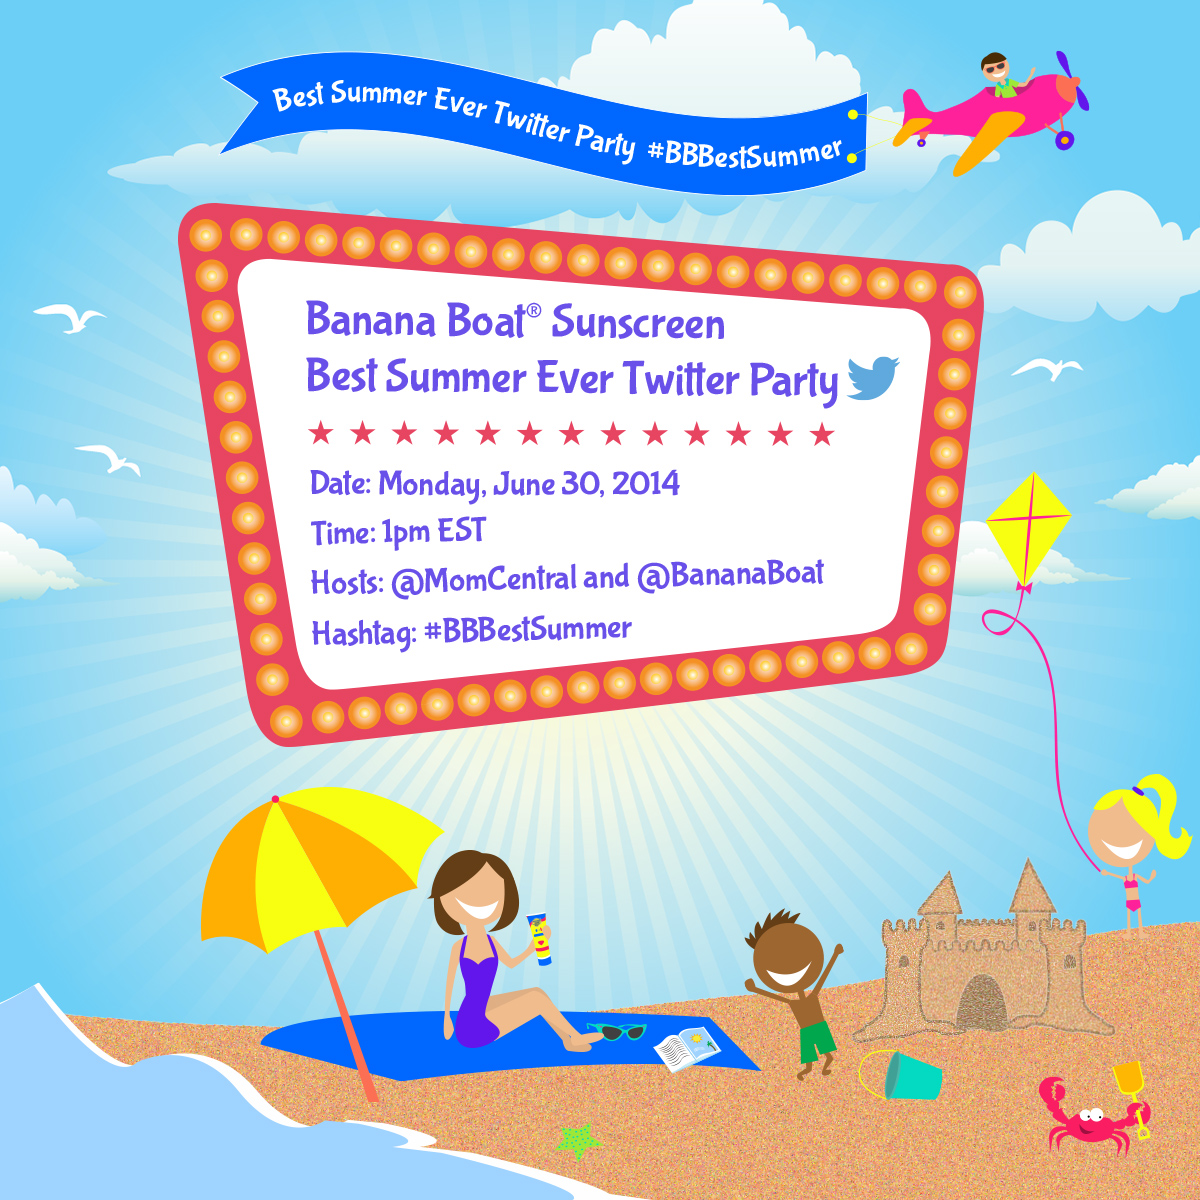 #BBBestSummer Twitter Party